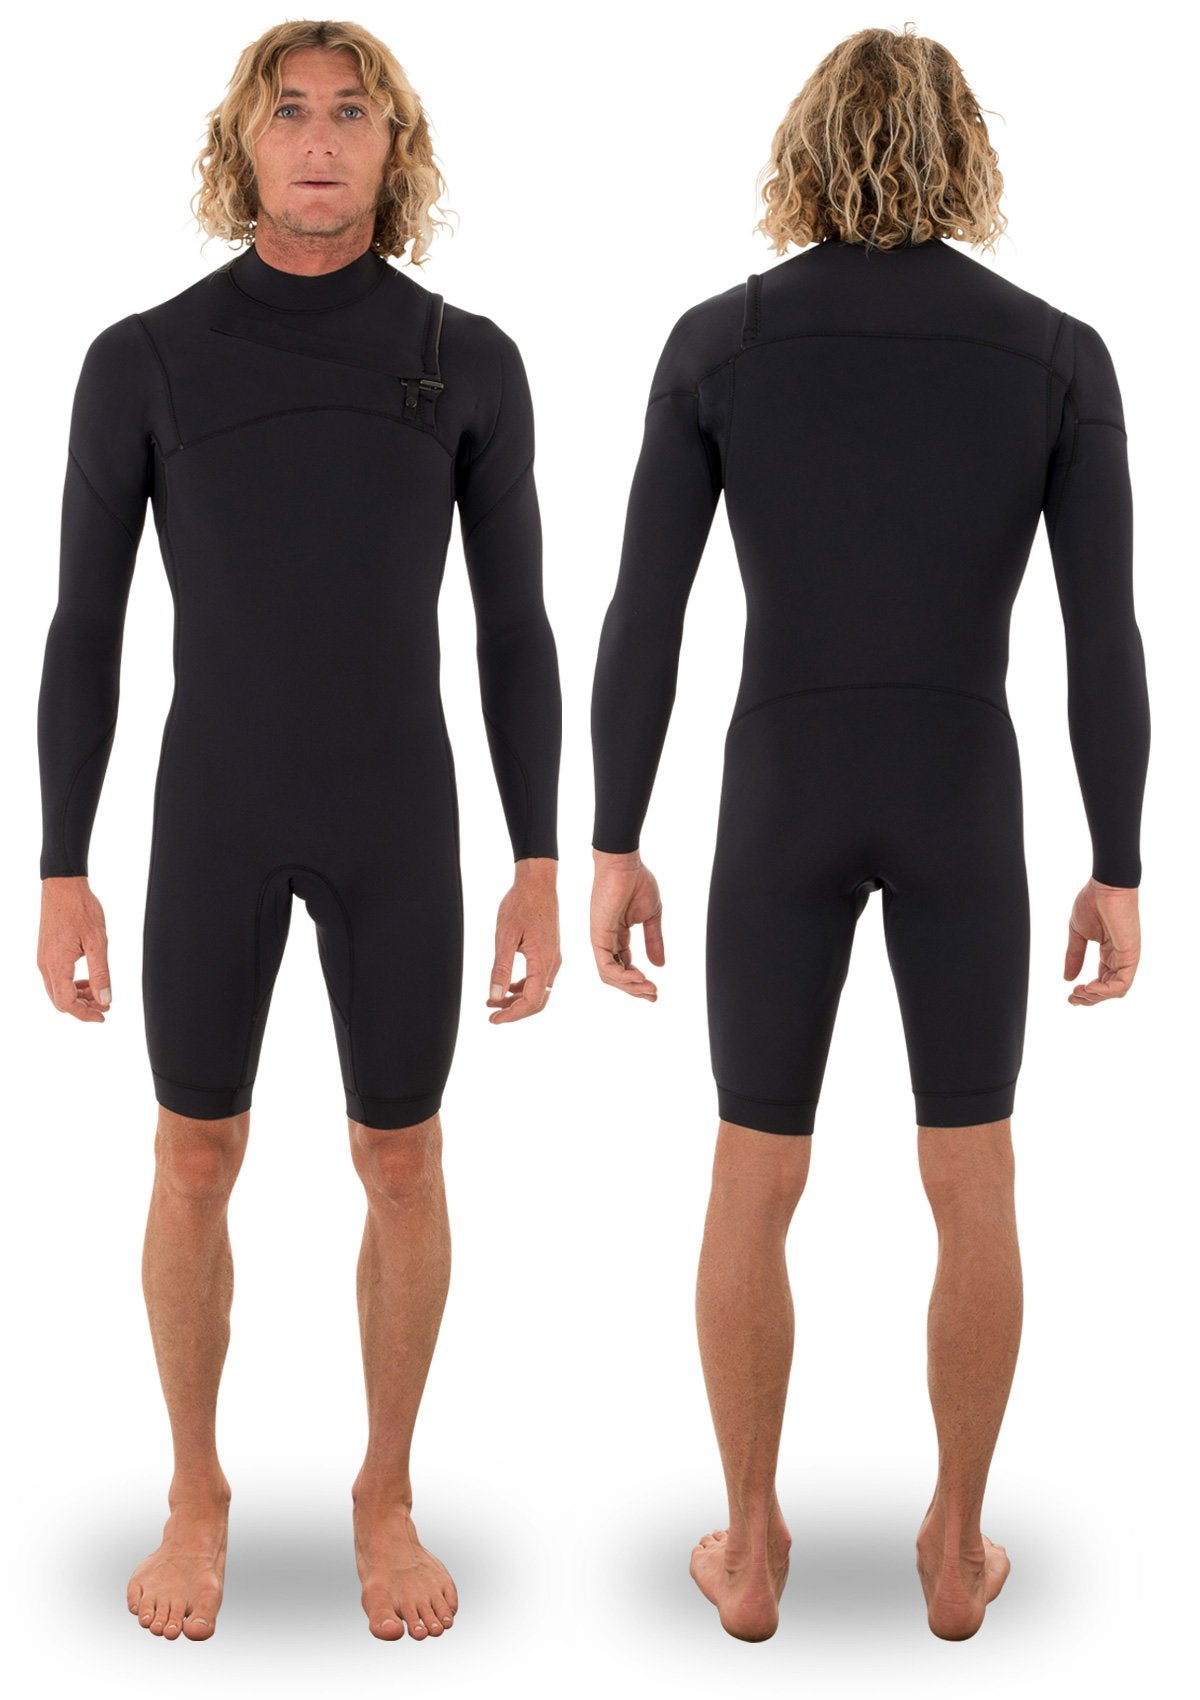 needessentials Long Arm Spring surfing summer wetsuit